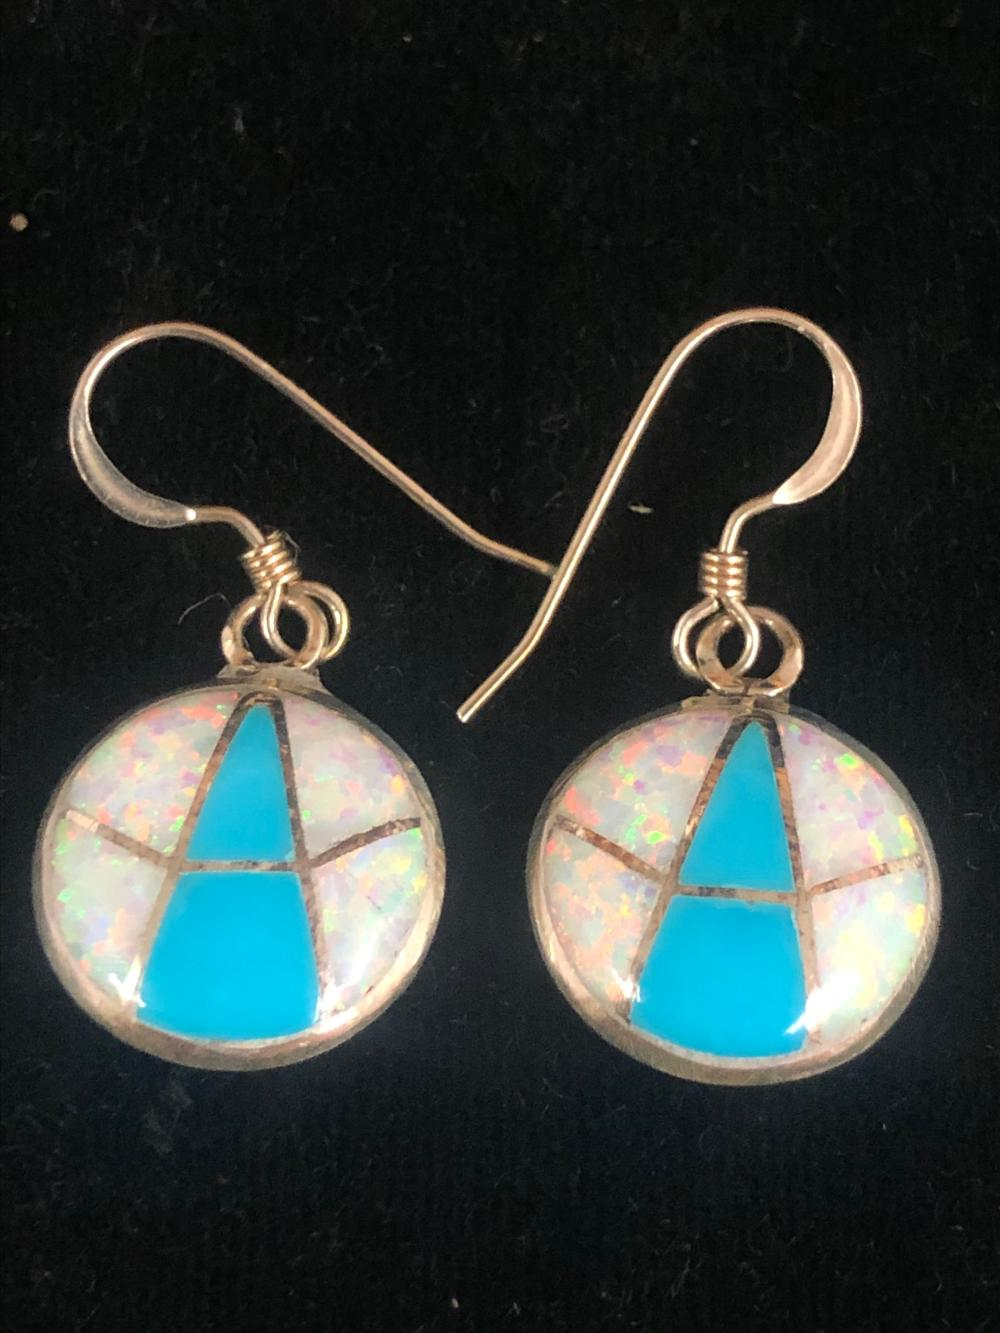 Turquoise and cultured opal inlay round sterling silver earrings